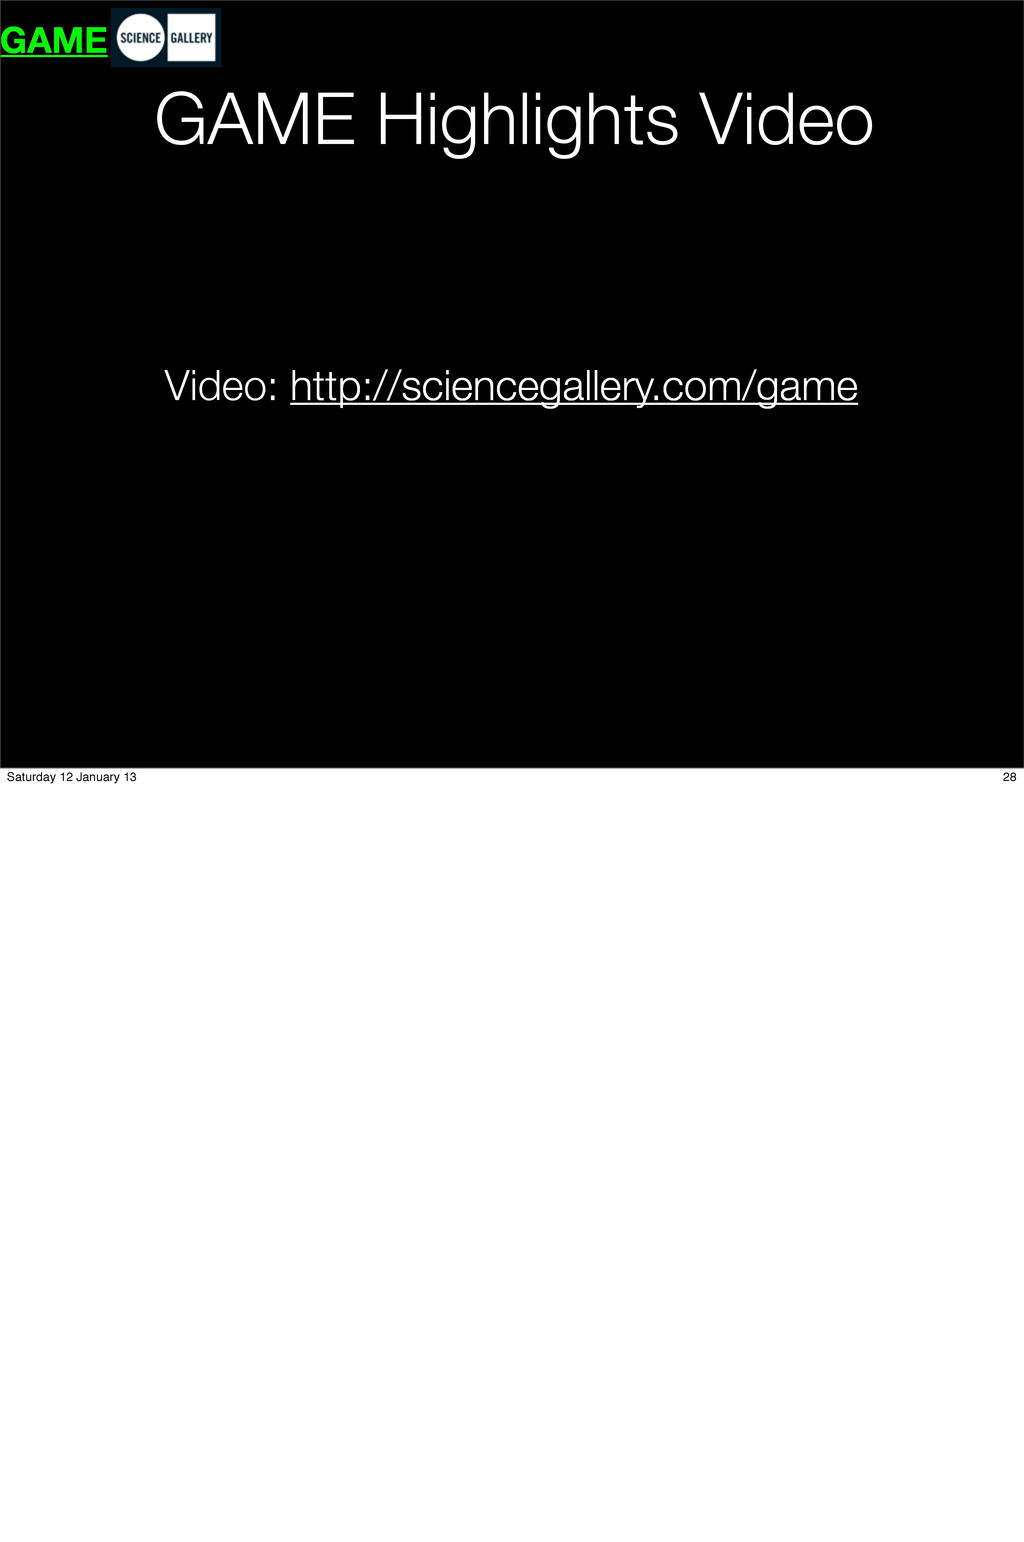 Video: http://sciencegallery.com/game GAME High...